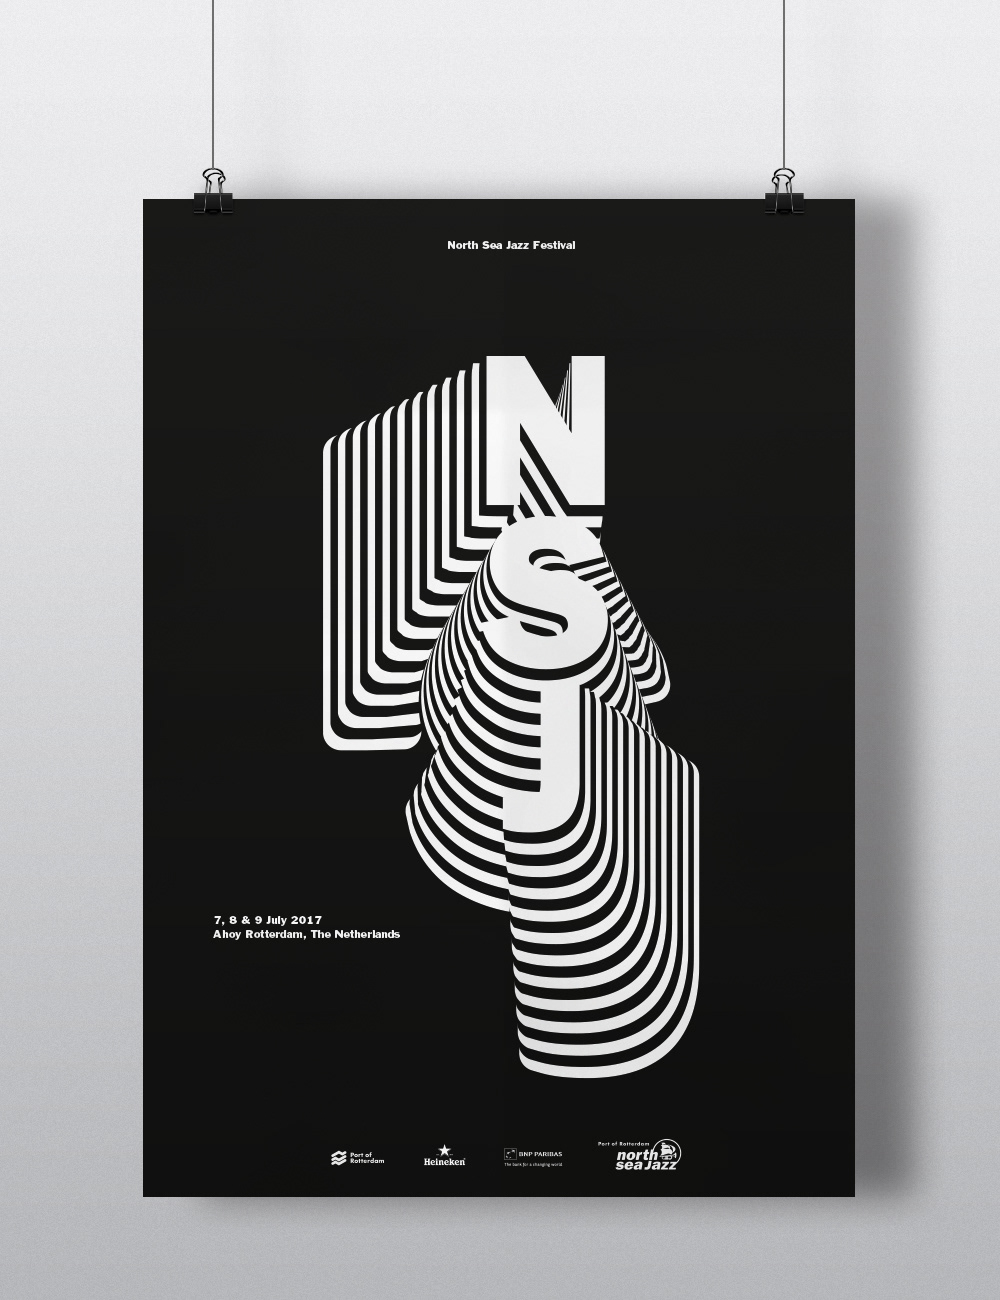 NORTH SEA JAZZ POSTER CONTEST